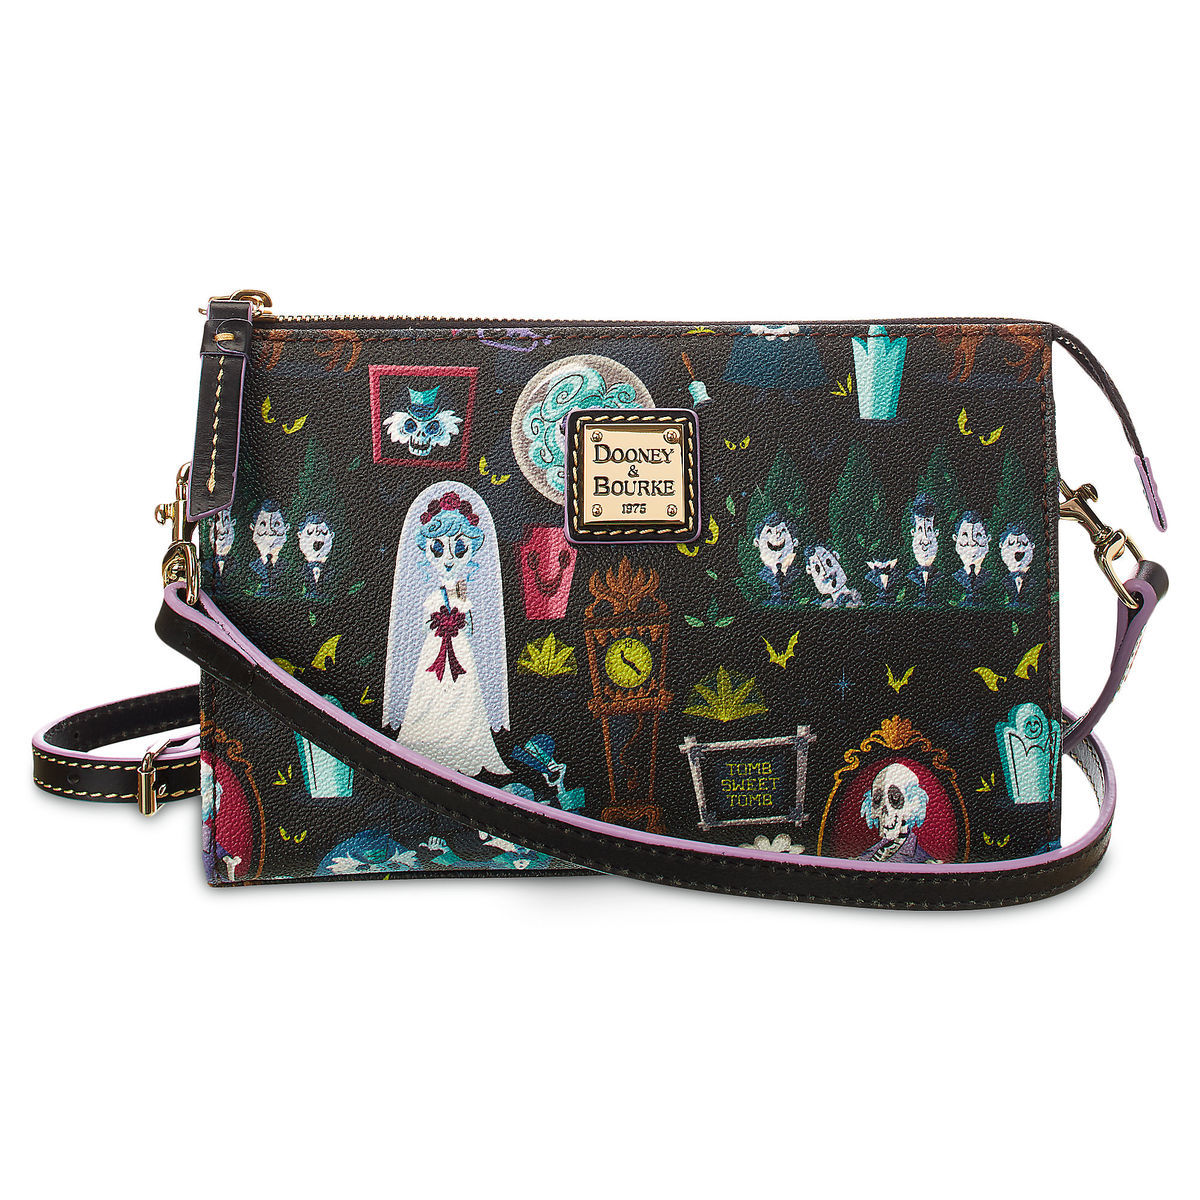 Product Image Of Haunted Mansion Crossbody Bag By Dooney Bourke 1